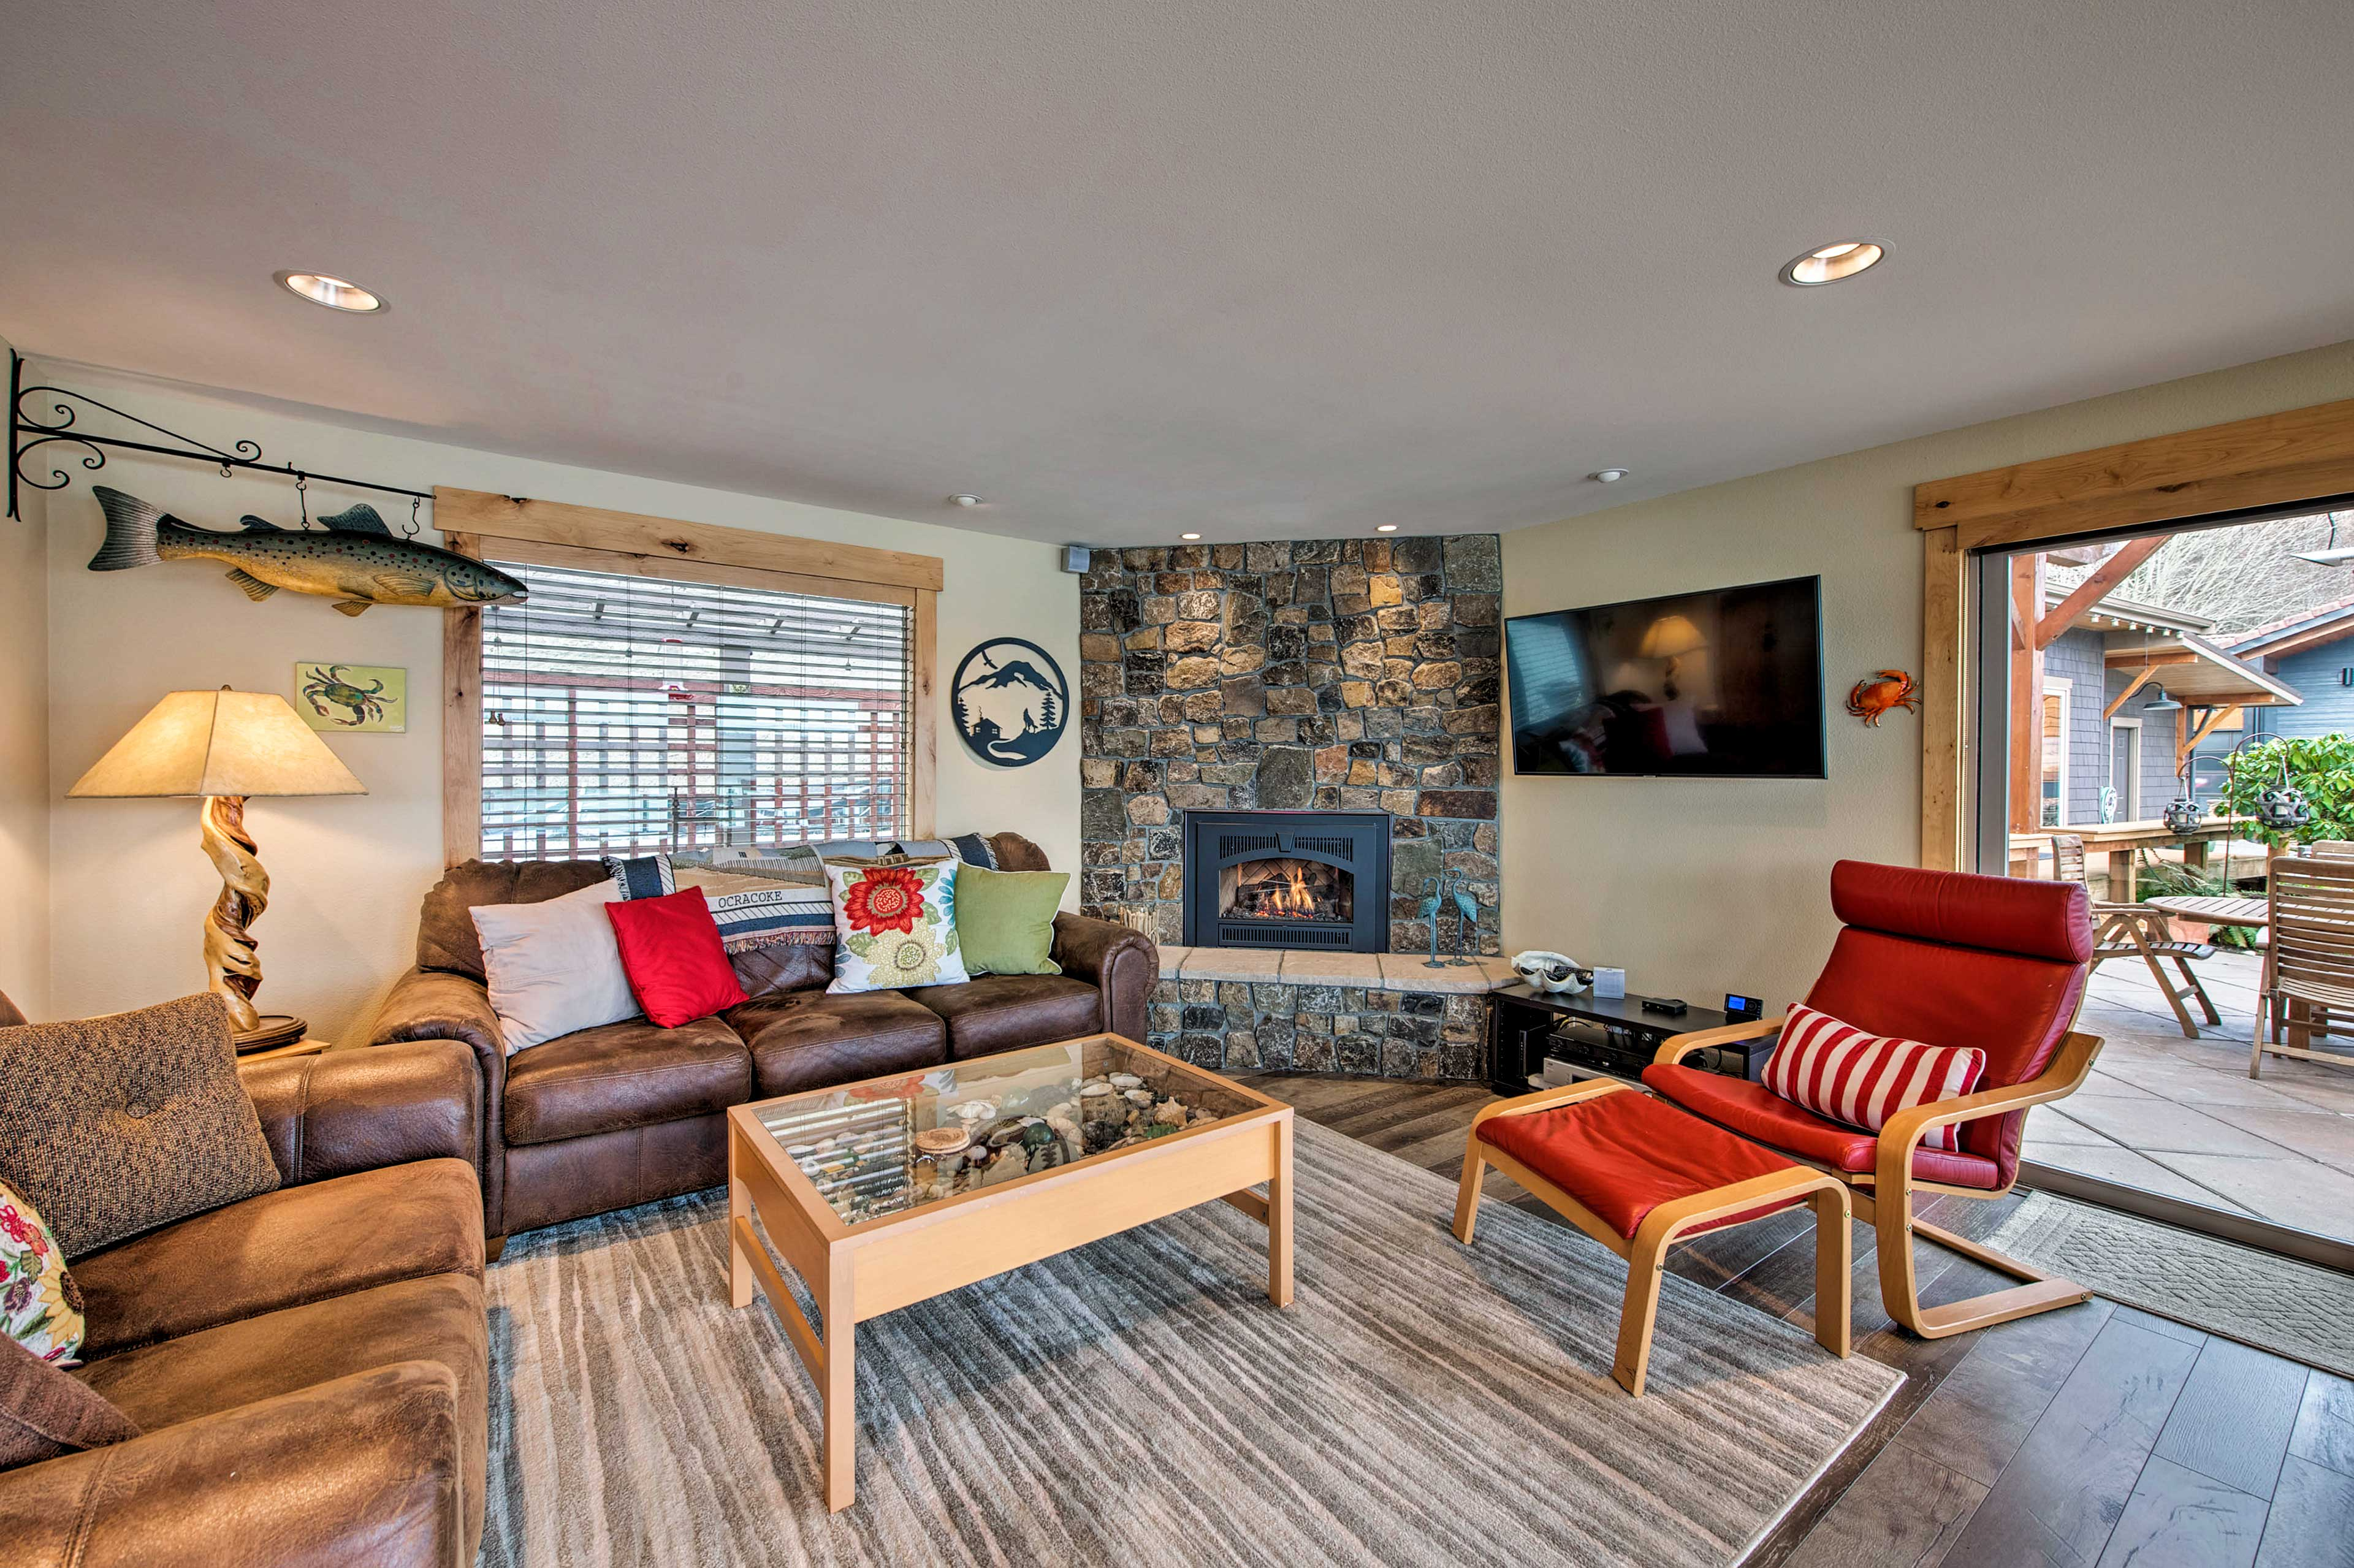 Warm up next to the gas-powered fireplace while you watch the flat-screen TV!